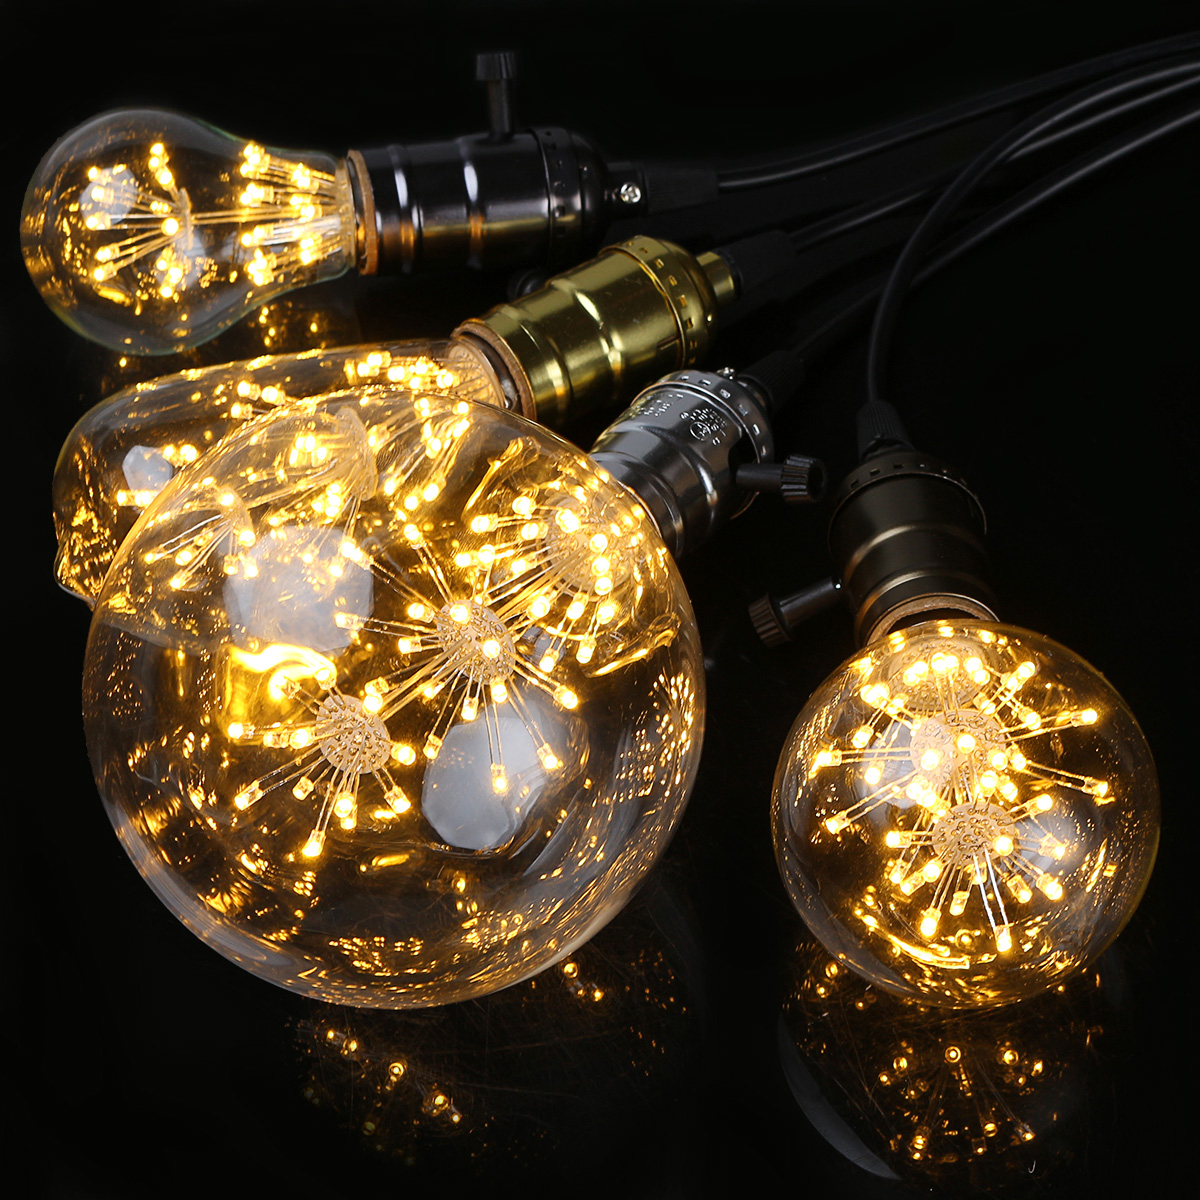 e27 3w vintage retro style edison led filament decorative light lamp bulb 220v ebay. Black Bedroom Furniture Sets. Home Design Ideas